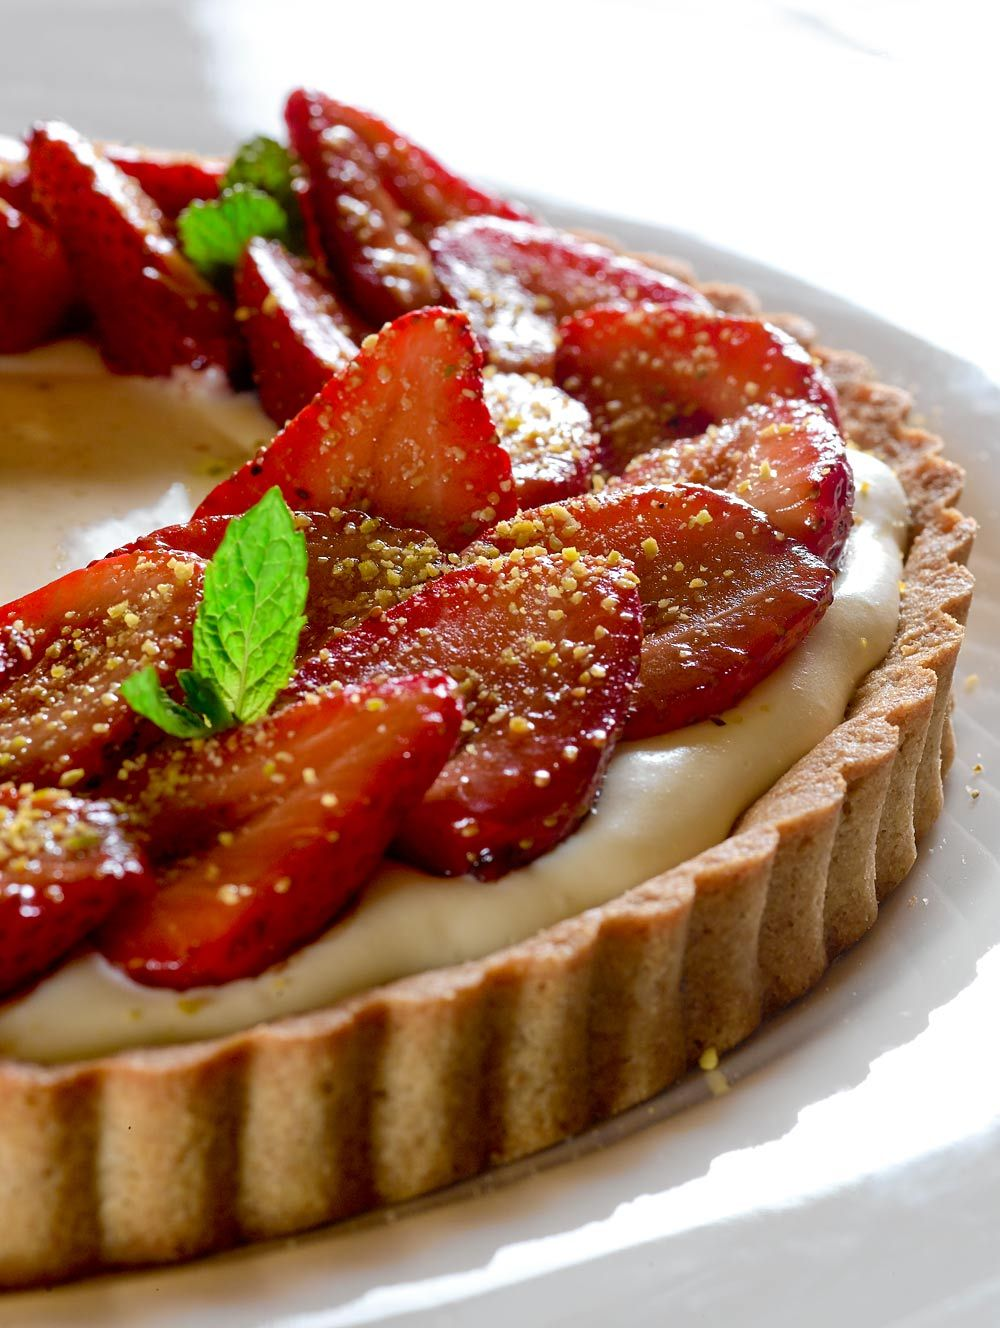 La Cucina Italiana Cheesecake Alle Fragole Strawberry Tart With Pistachio Sauce And Farro Flour Crust La